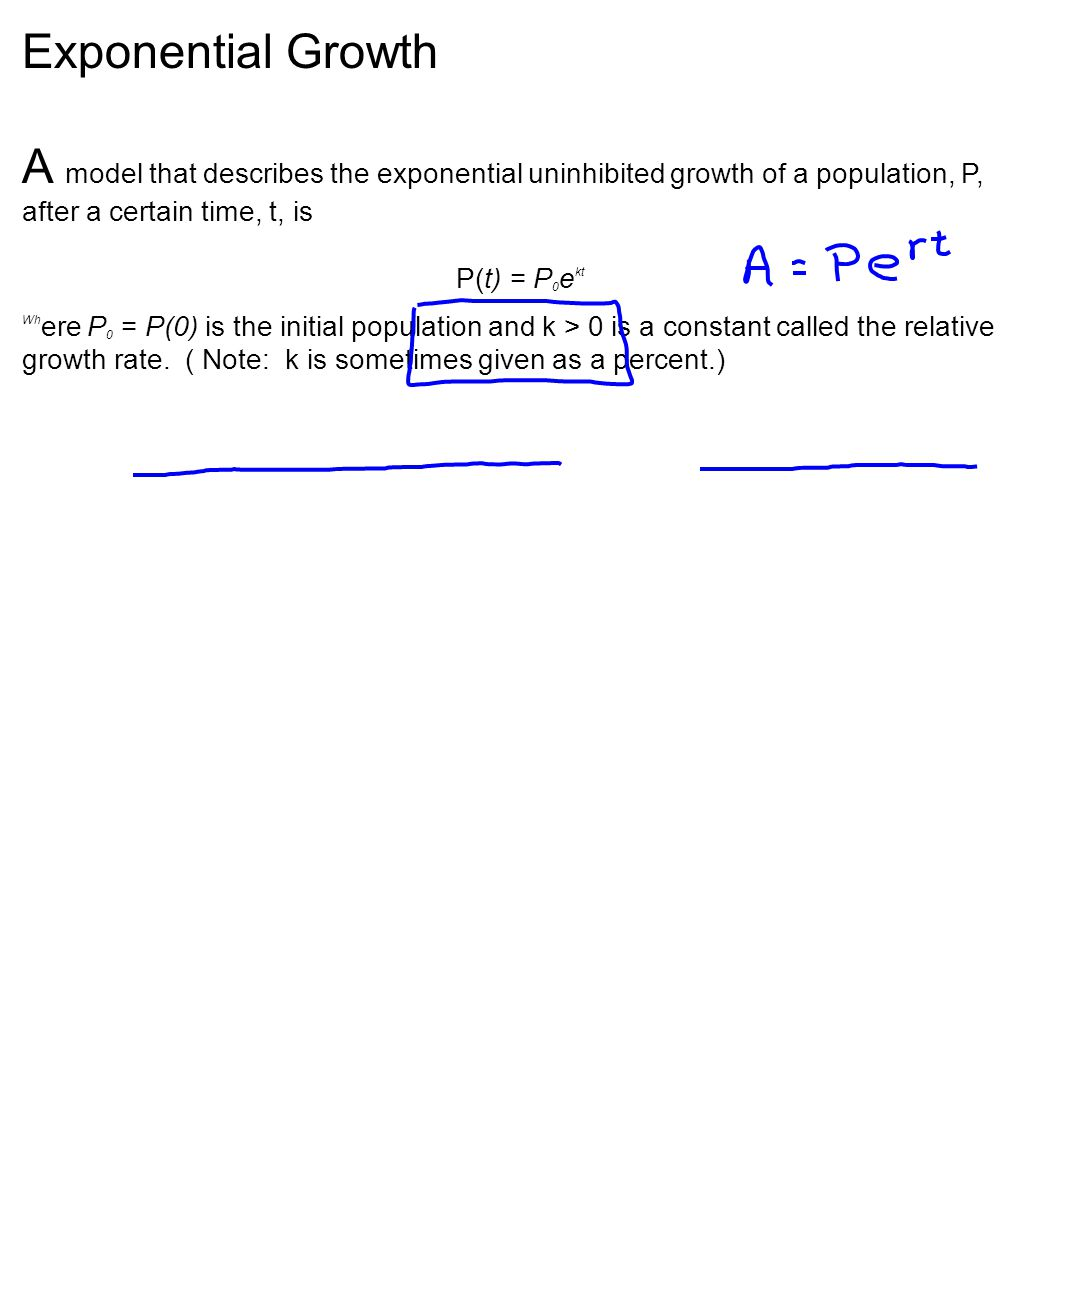 Exponential Growth A model that describes the exponential uninhibited growth of a population, P, after a certain time, t, is P(t) = P 0 e kt Wh ere P